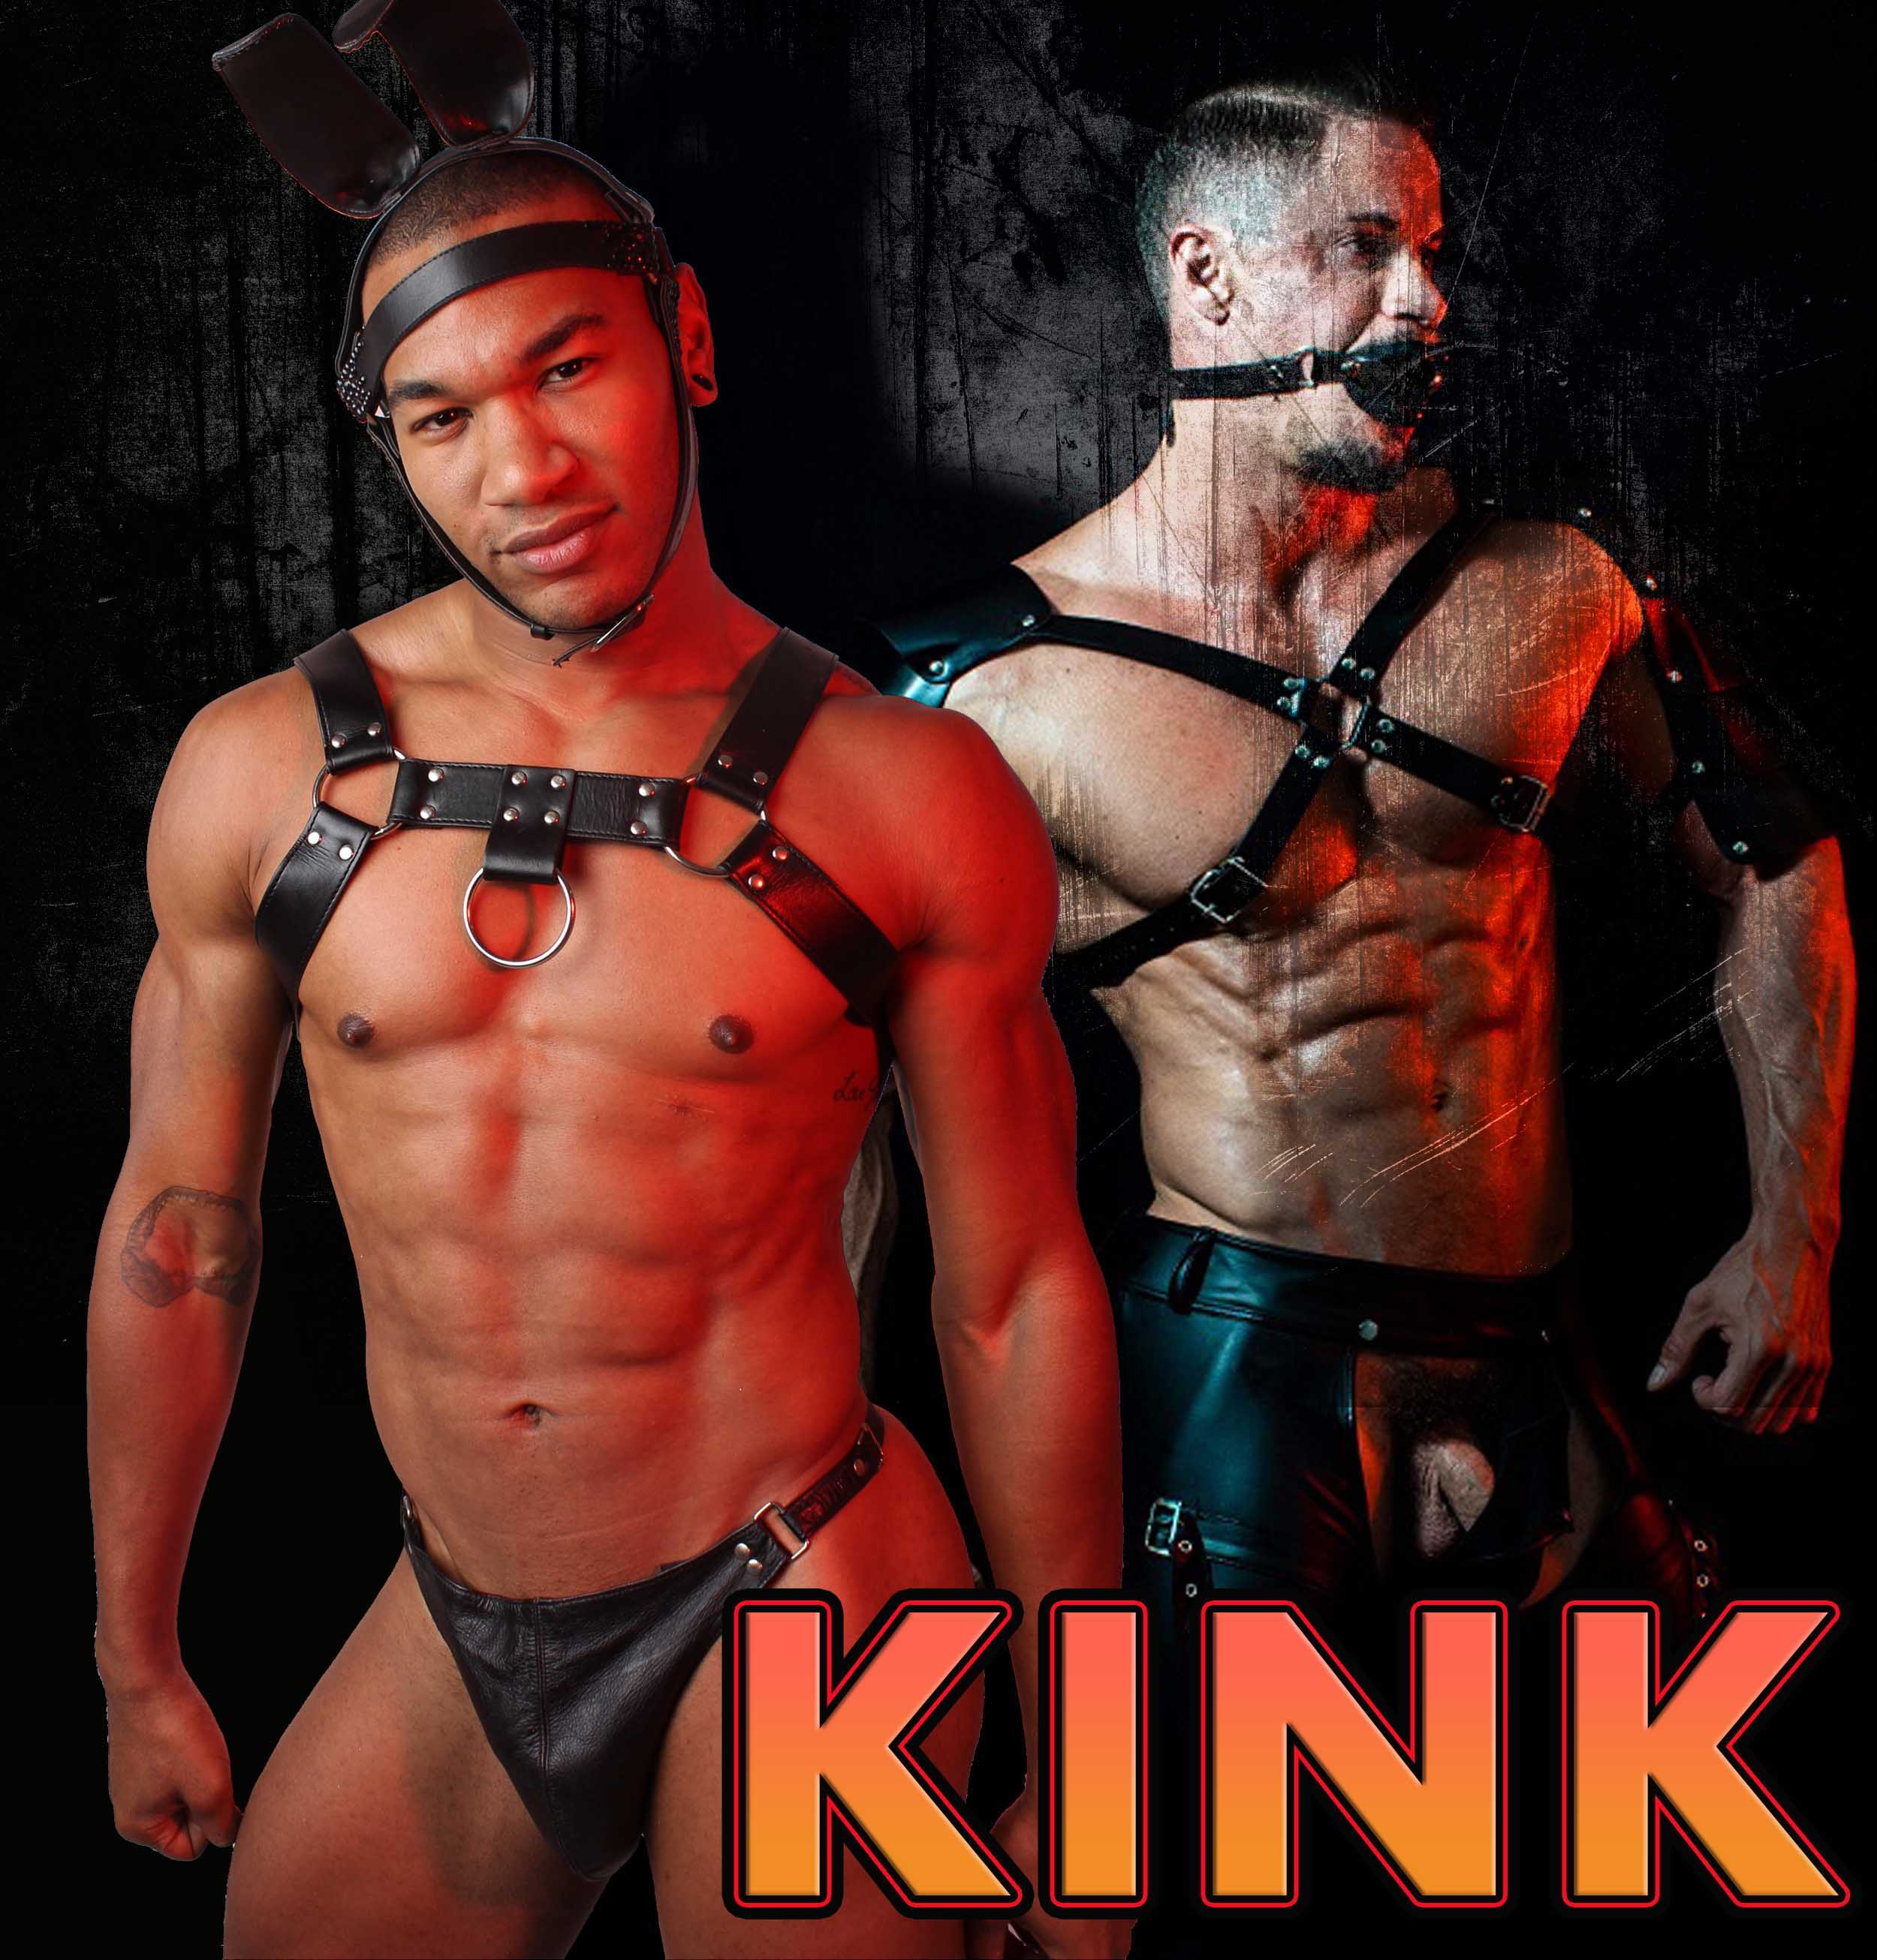 kink, harness, whip, gay